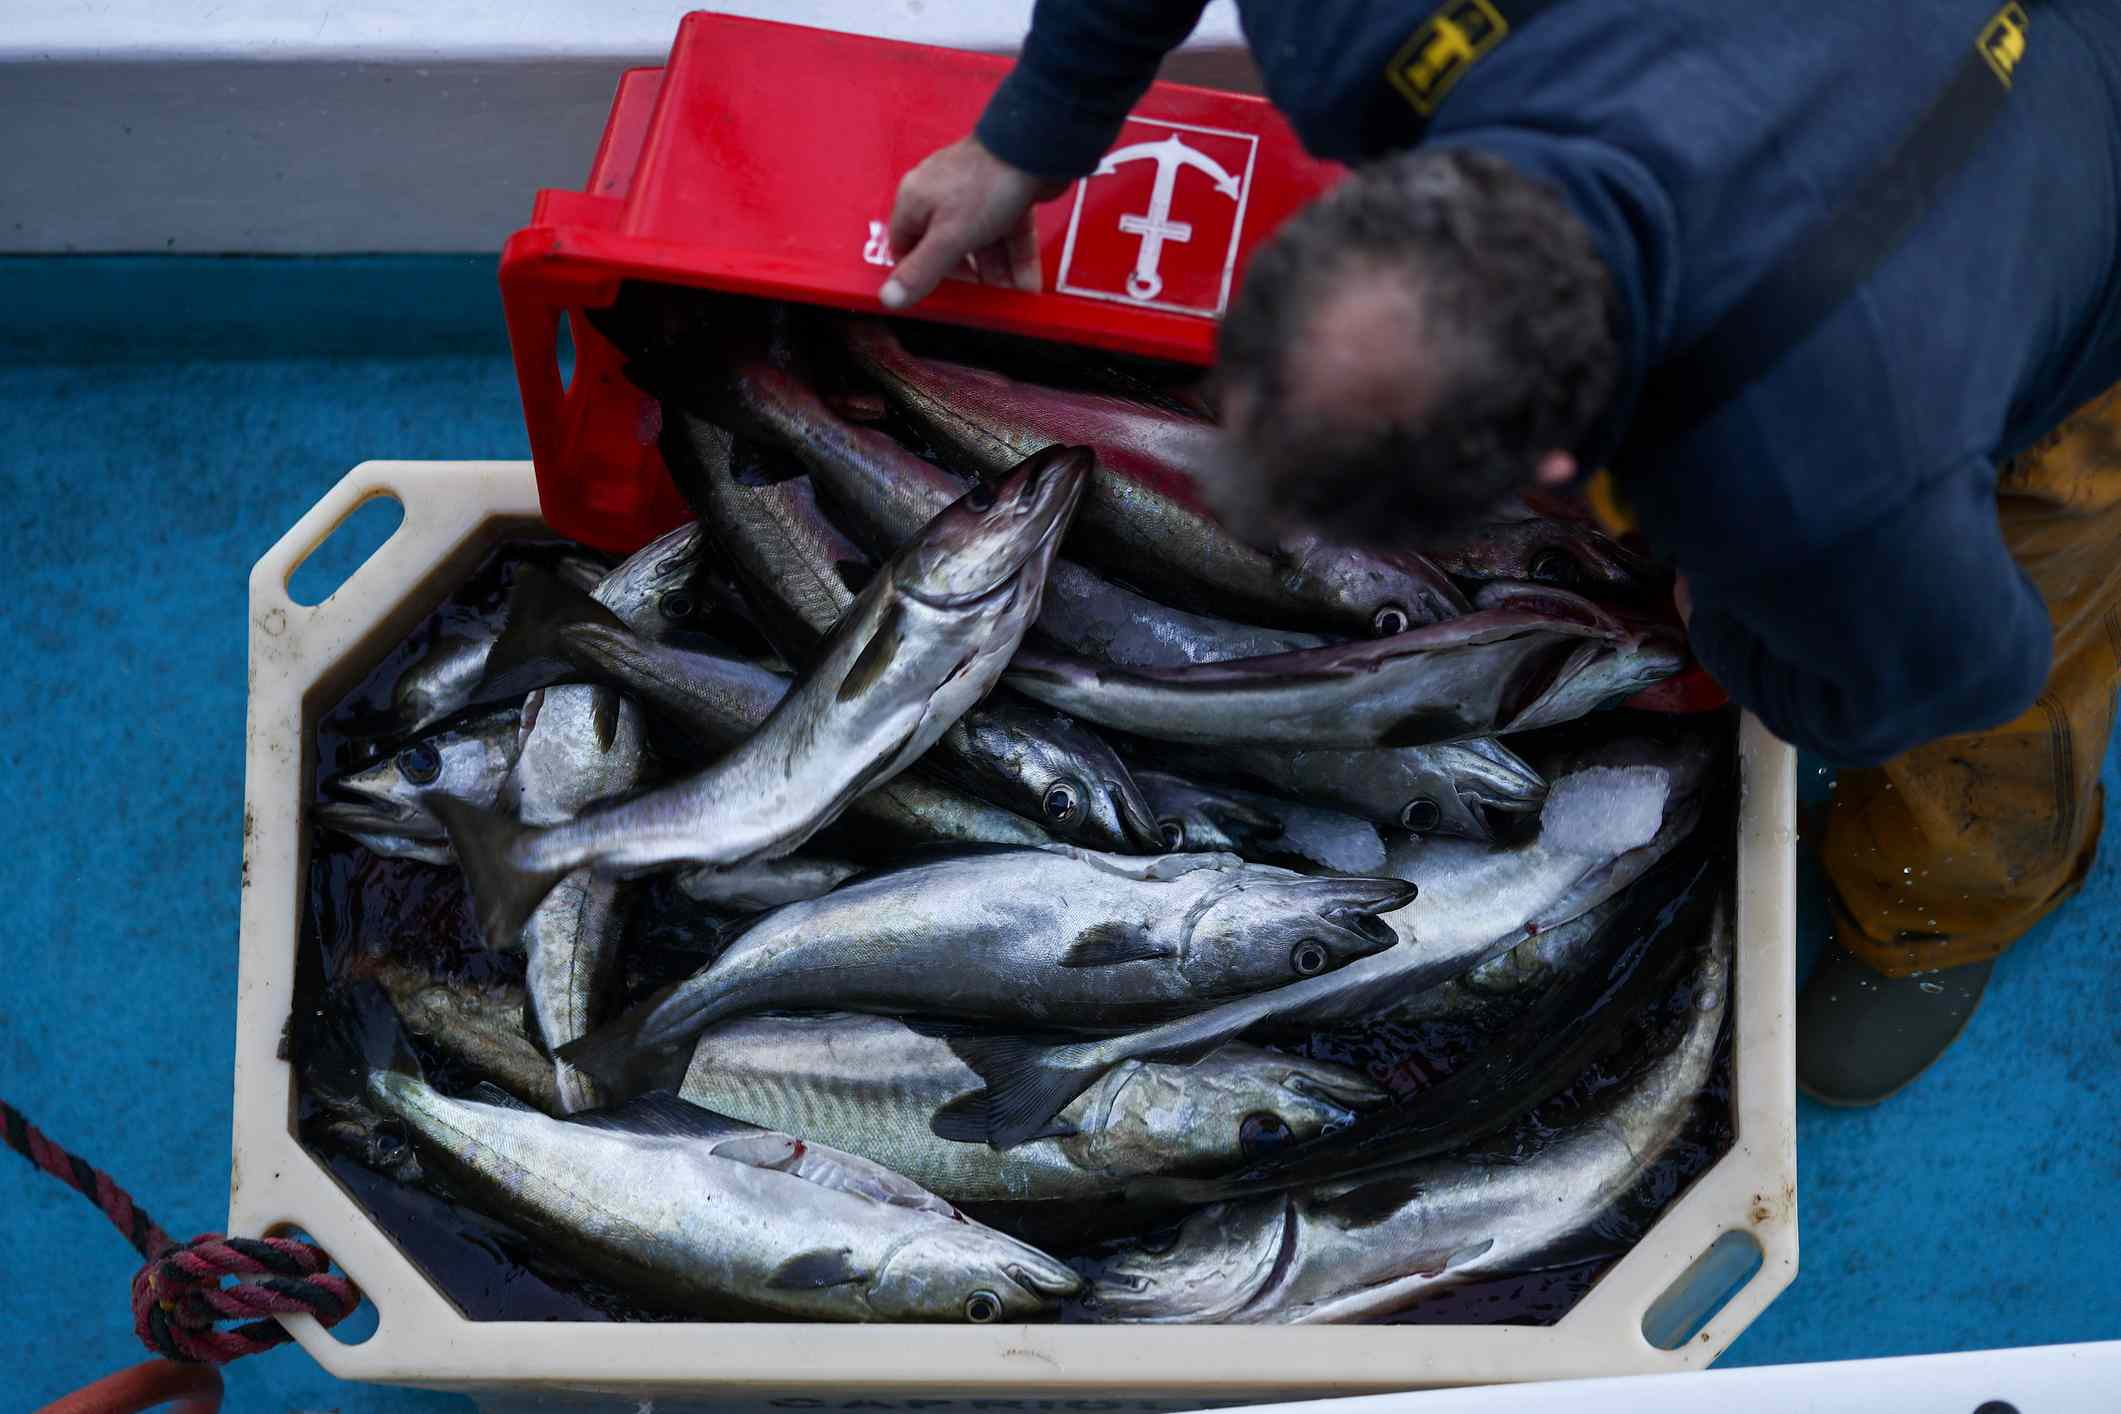 Fishing worker placing fish in a tote to be sold after Bexit